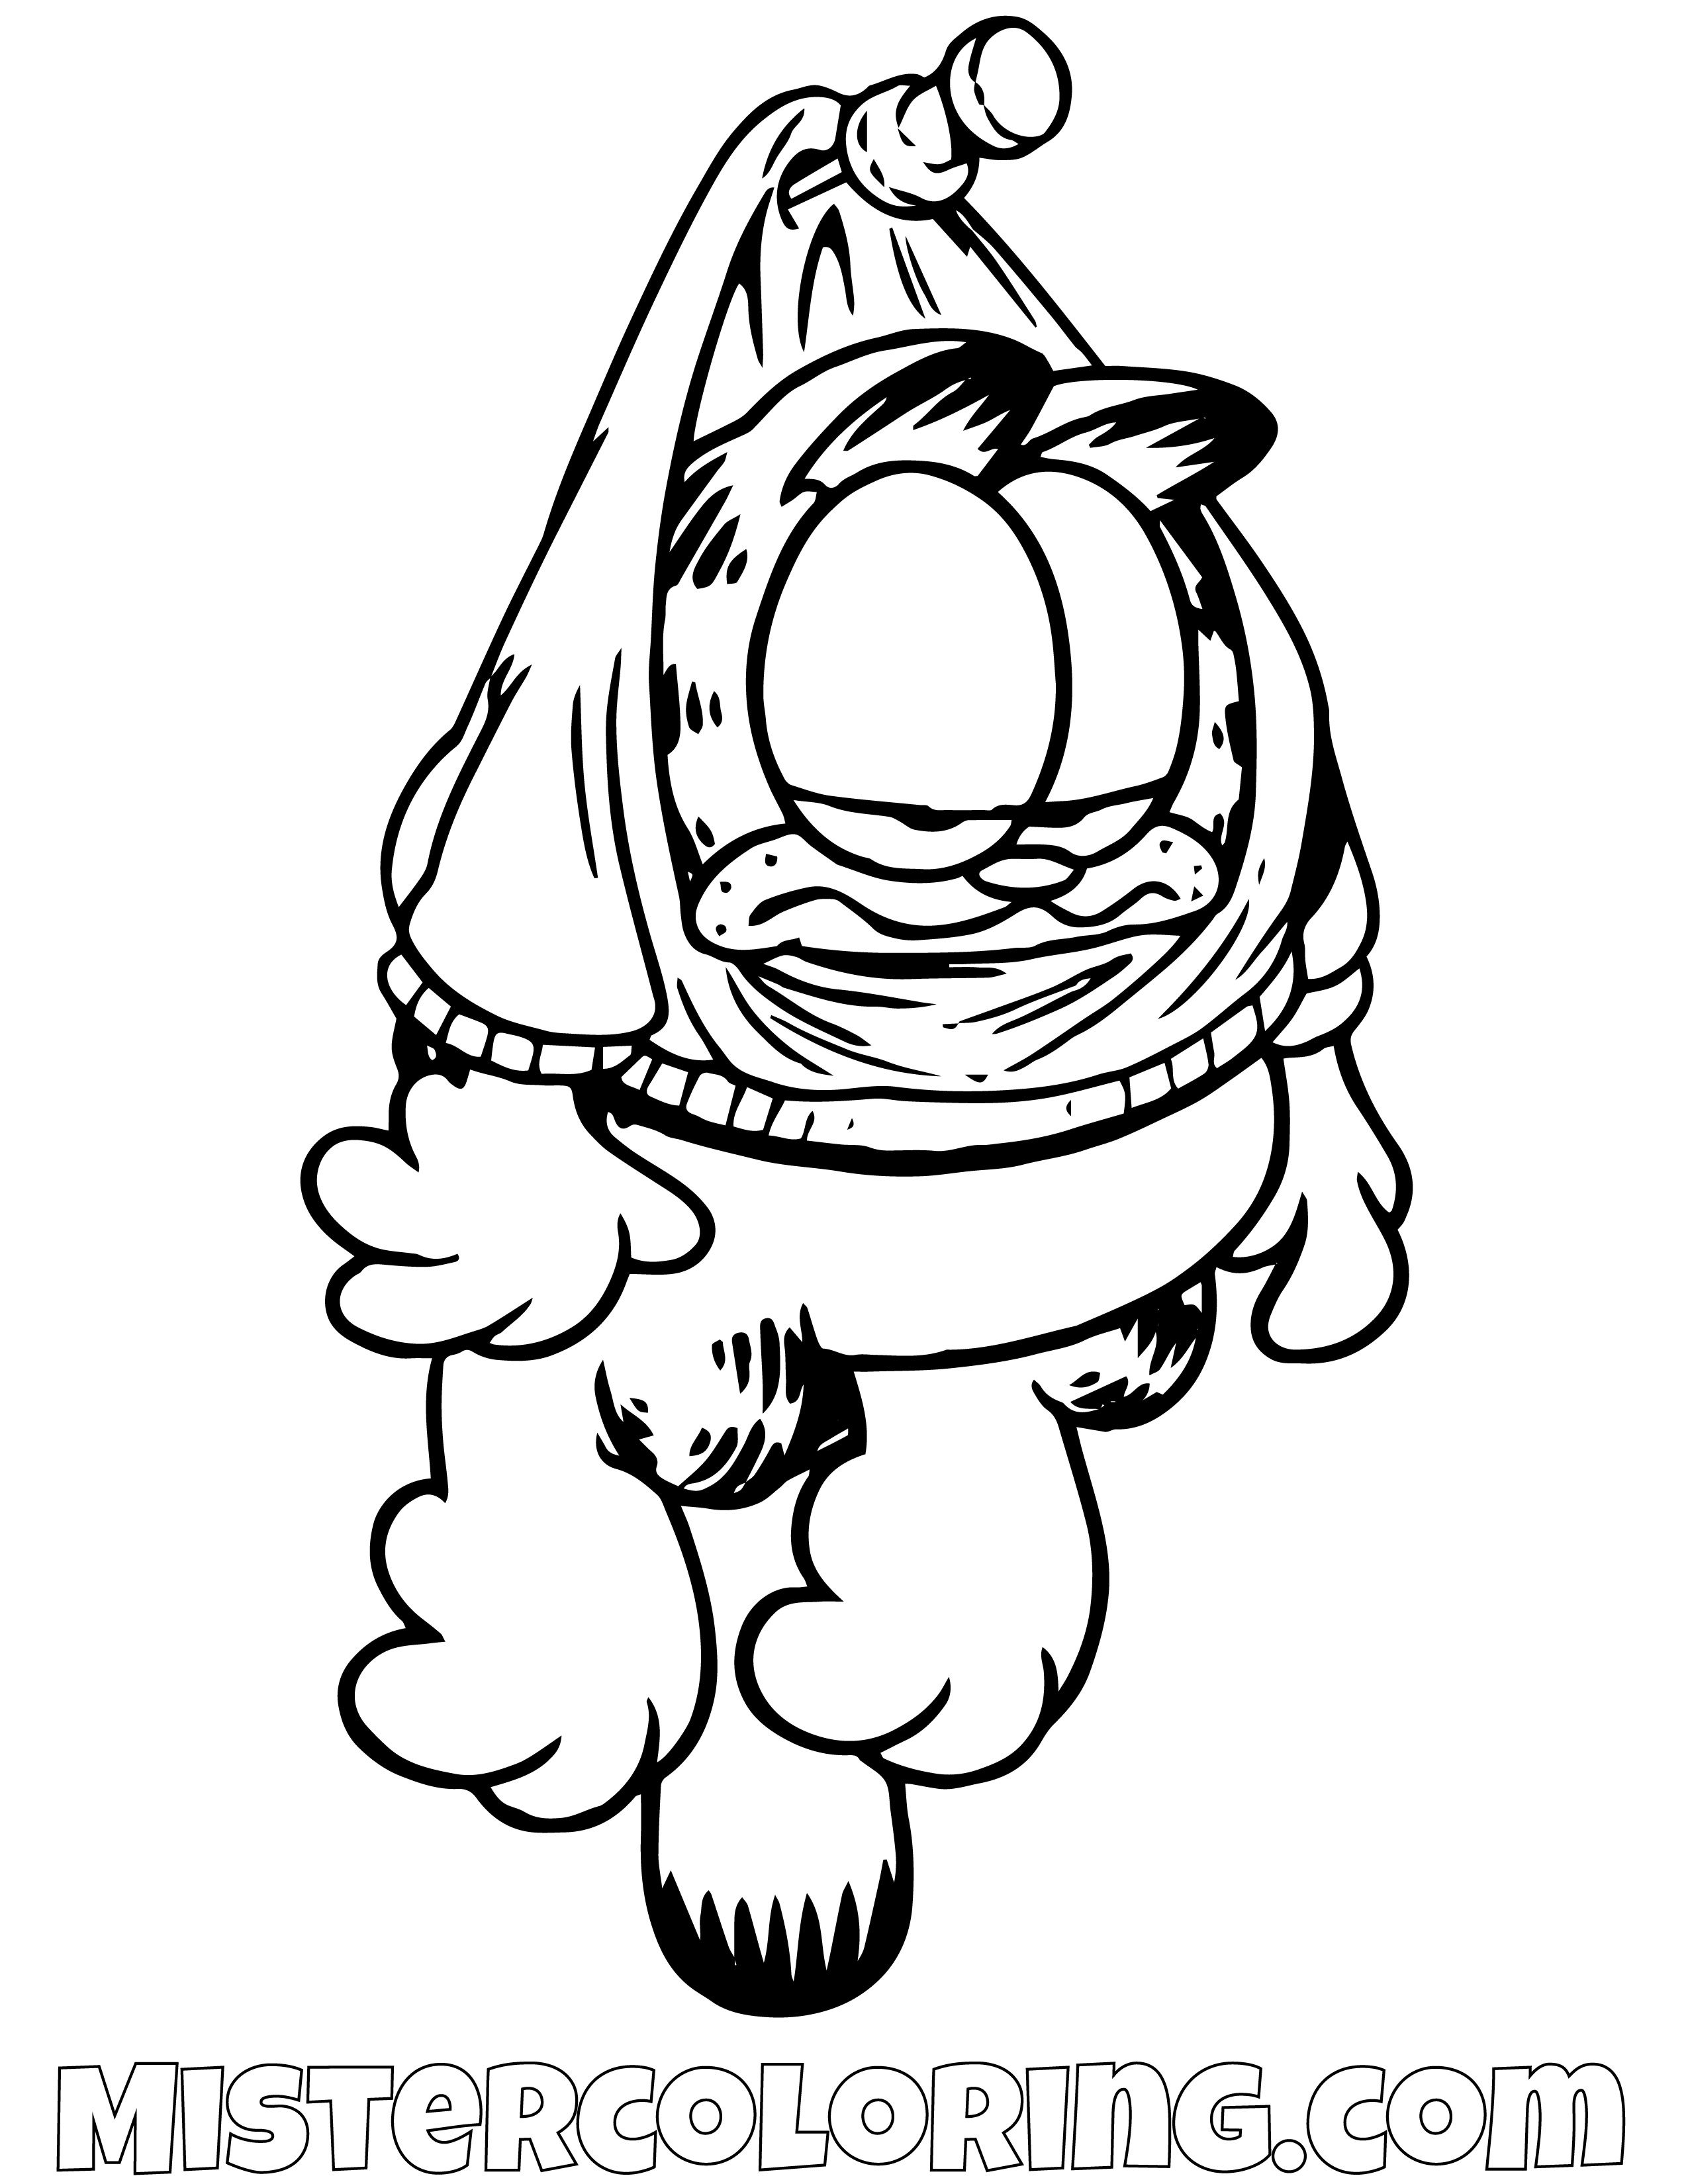 Garfield Coloring Pages For Kids Https Mistercoloring Com